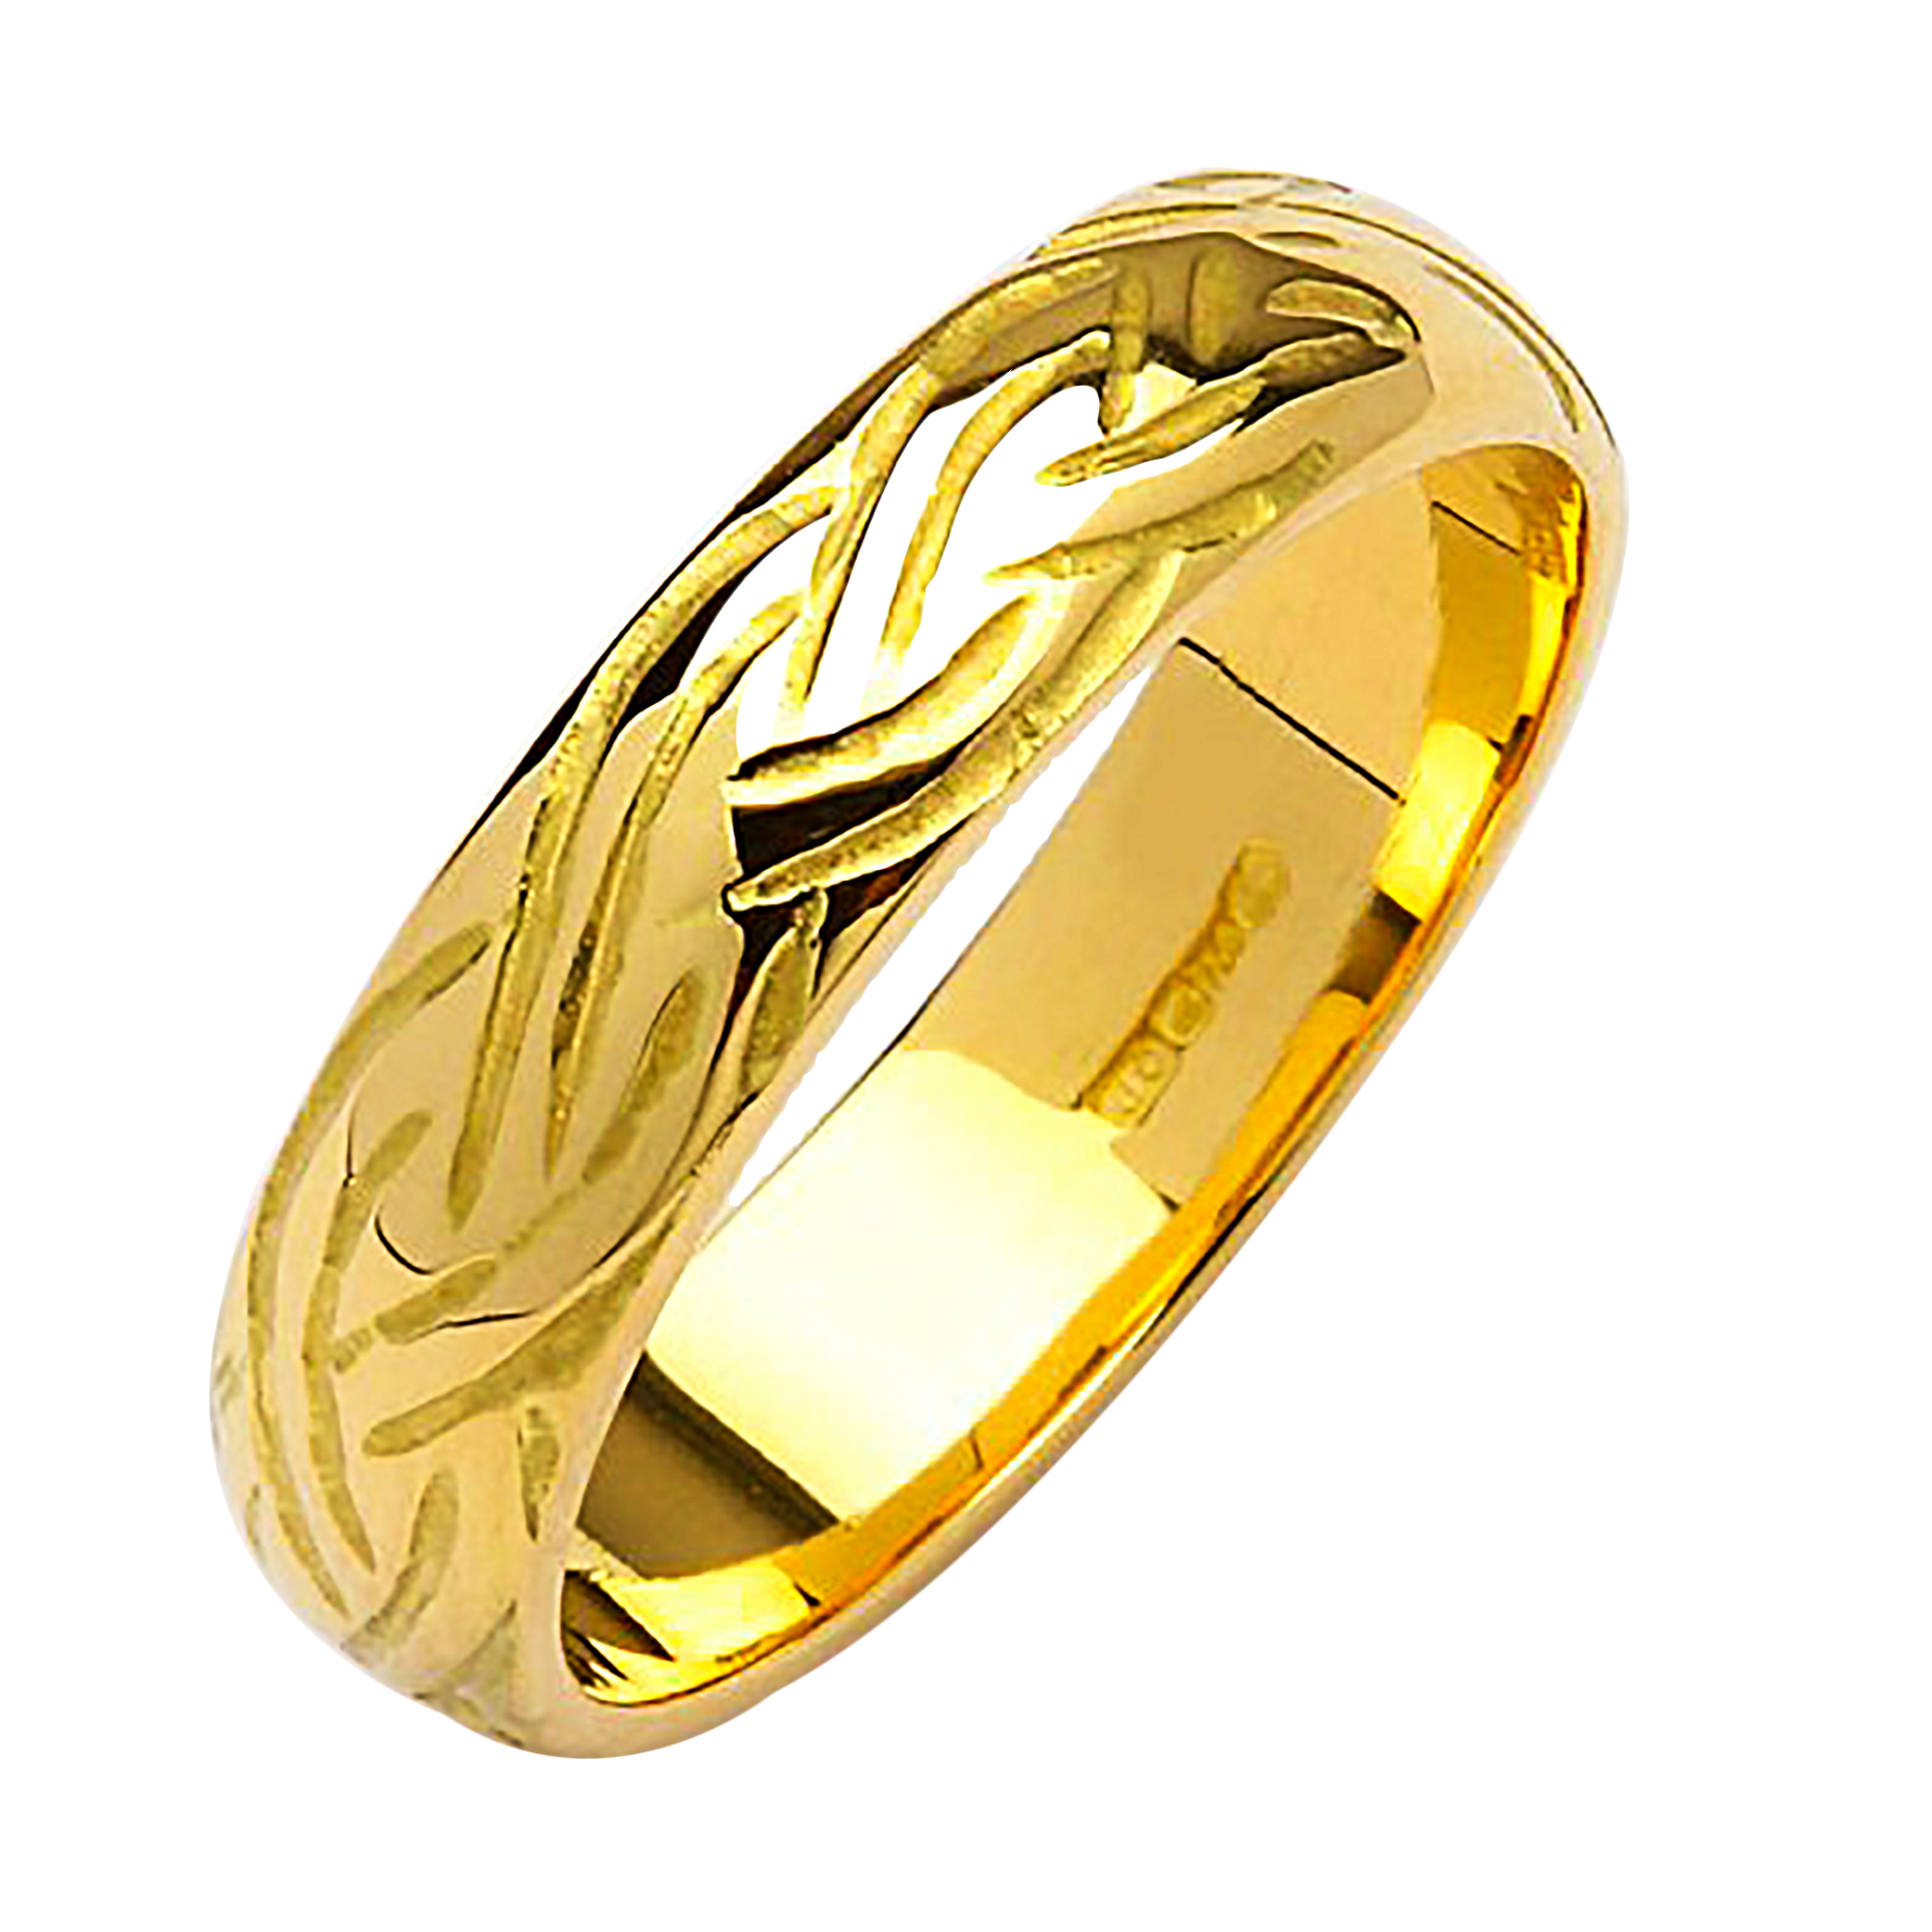 celtic his meaning of gallery nice site gaelic wedding hers scottish my for engagement traditional rings cool and bands